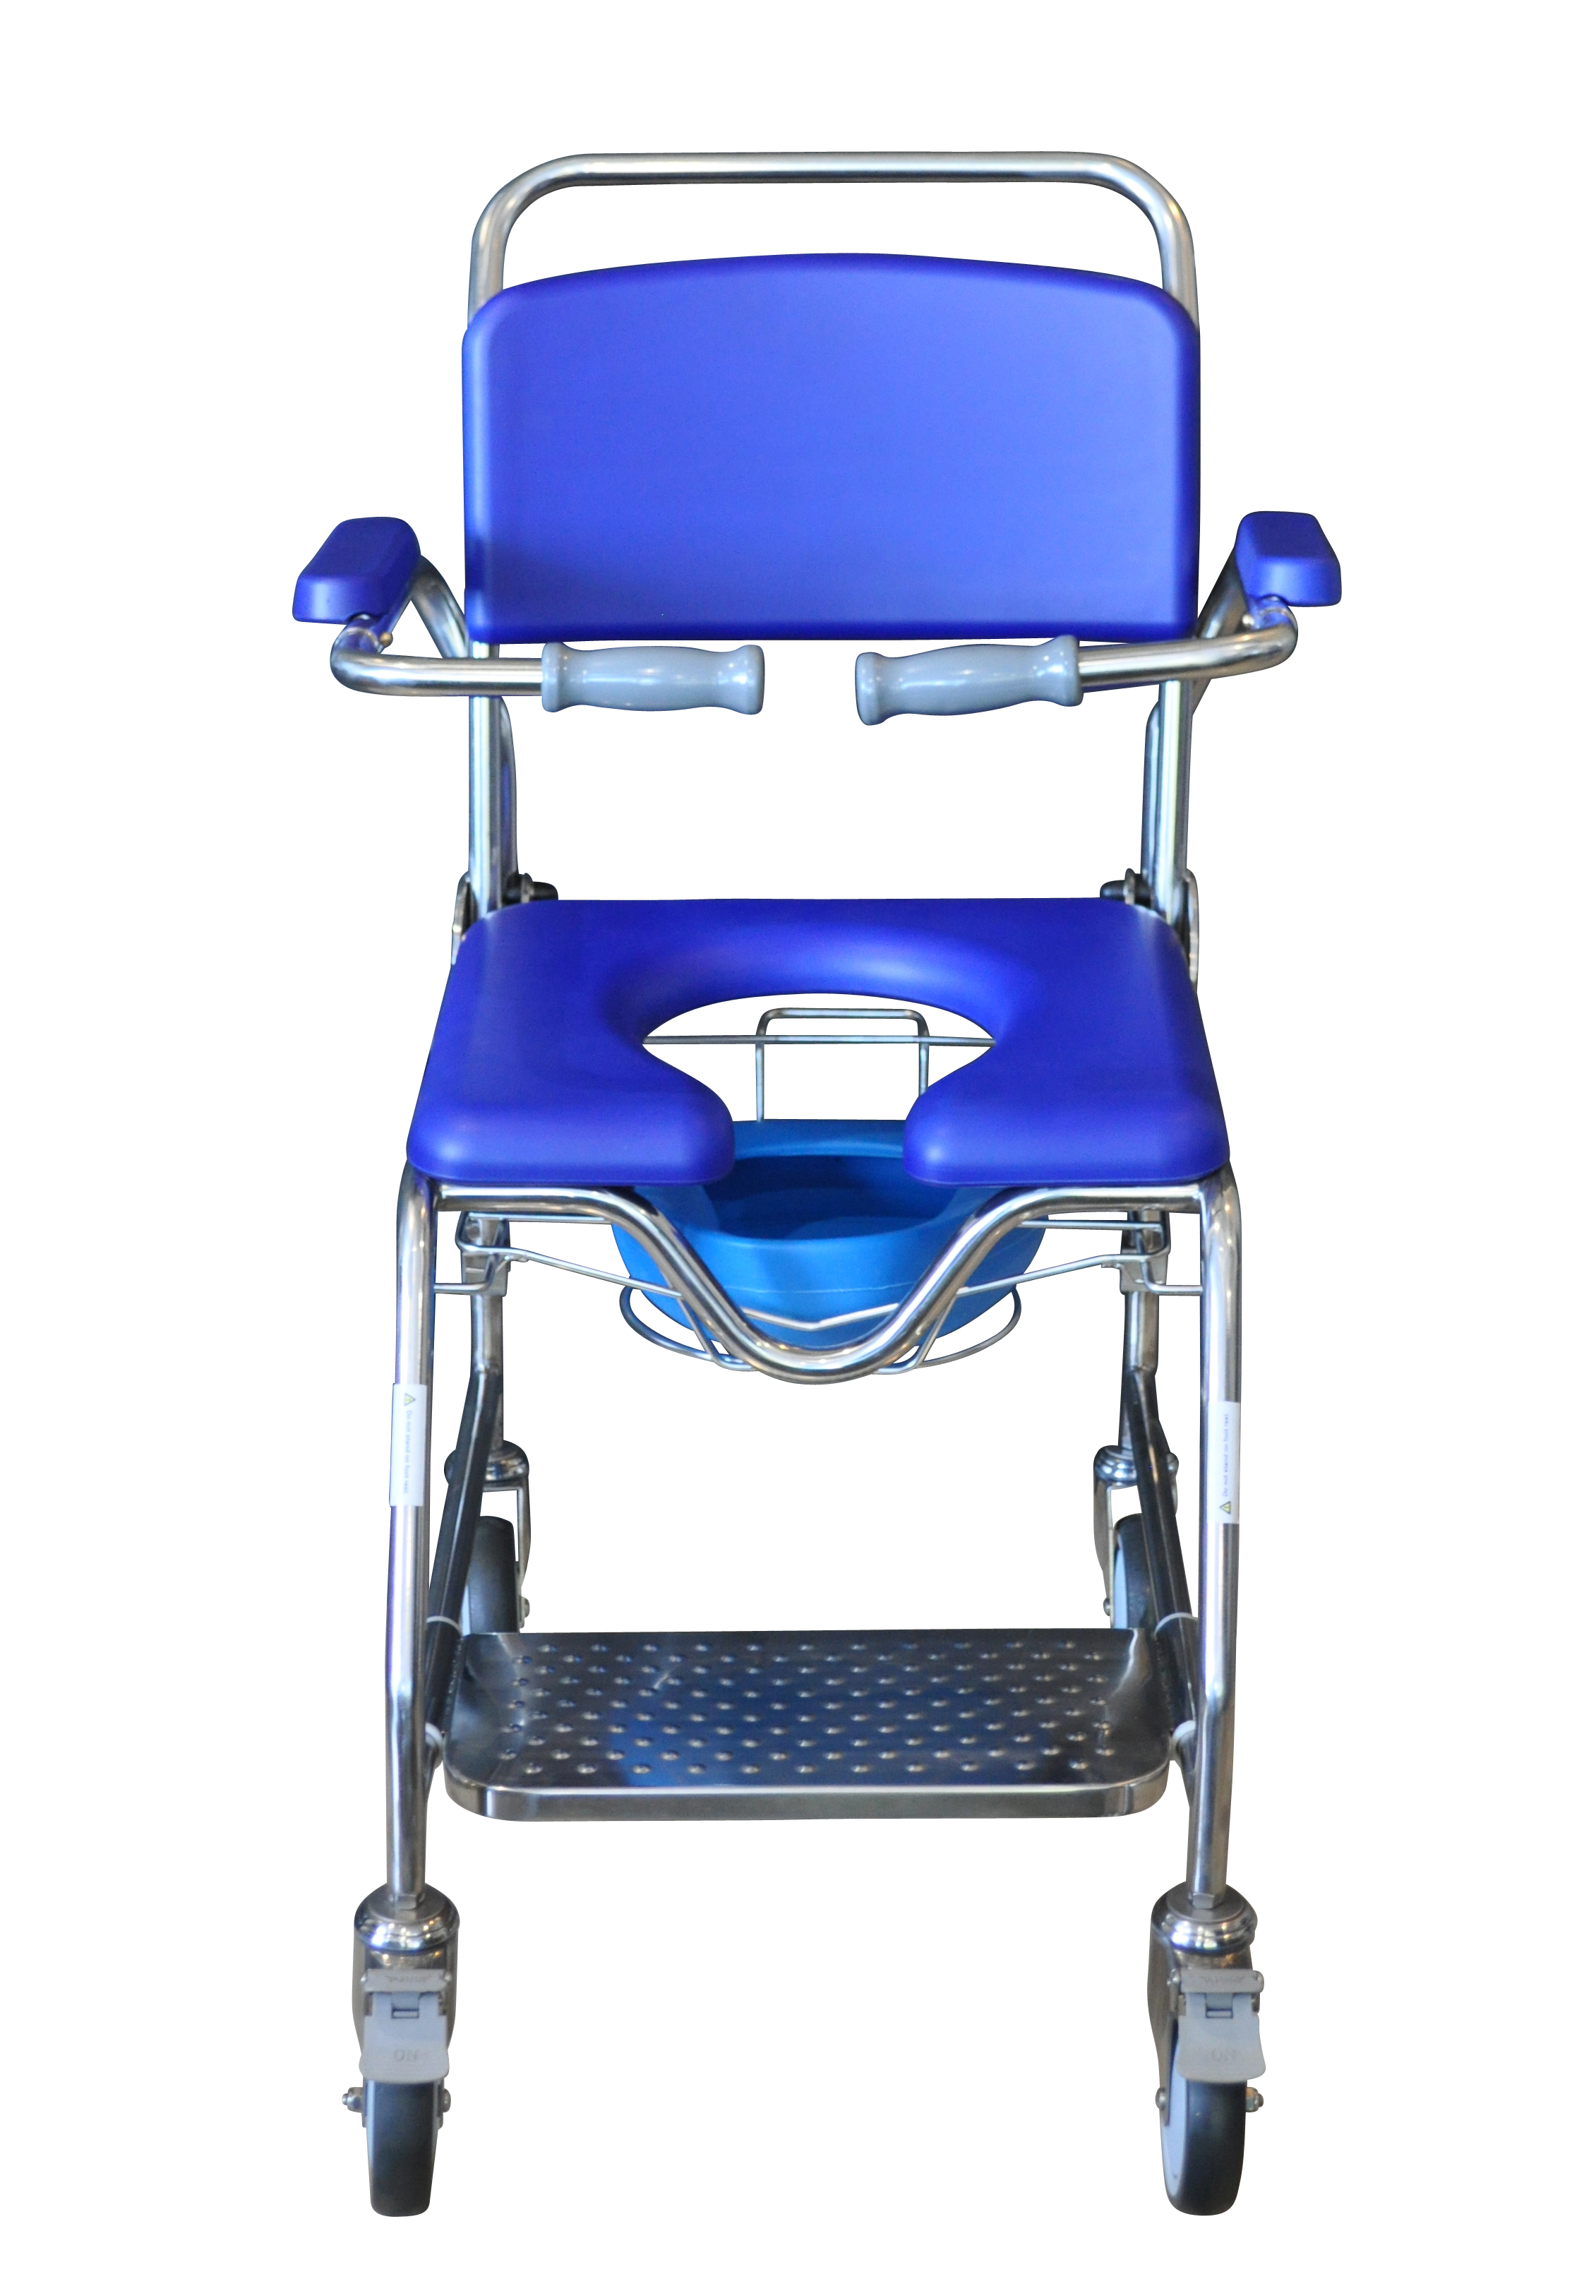 Aqcura Mobile Shower Chair